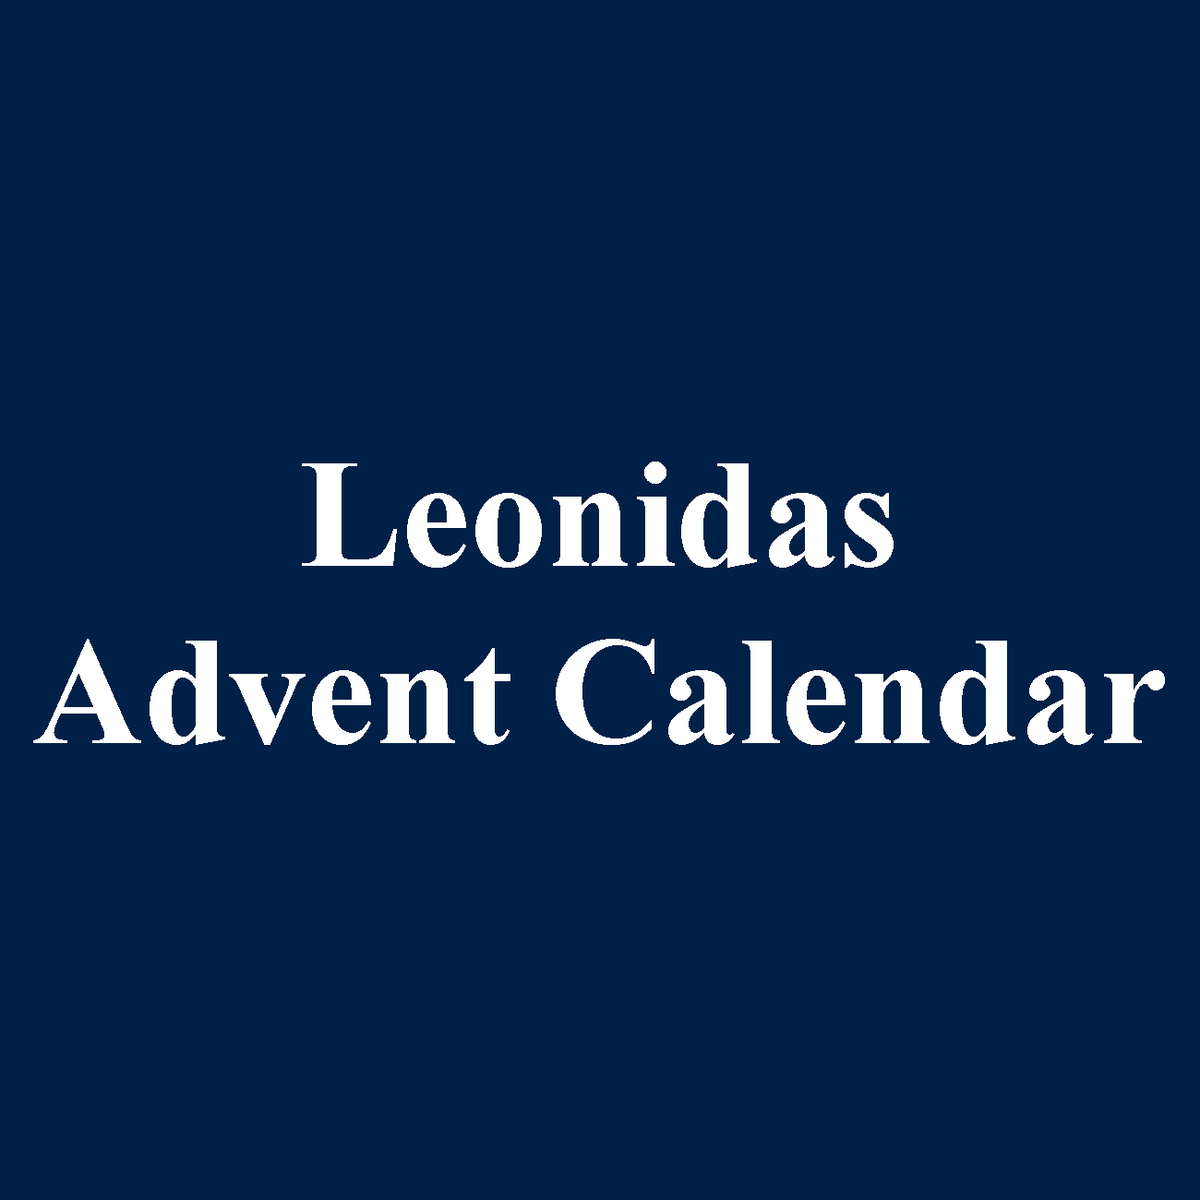 Leonidas Chocolate Advent Calendar